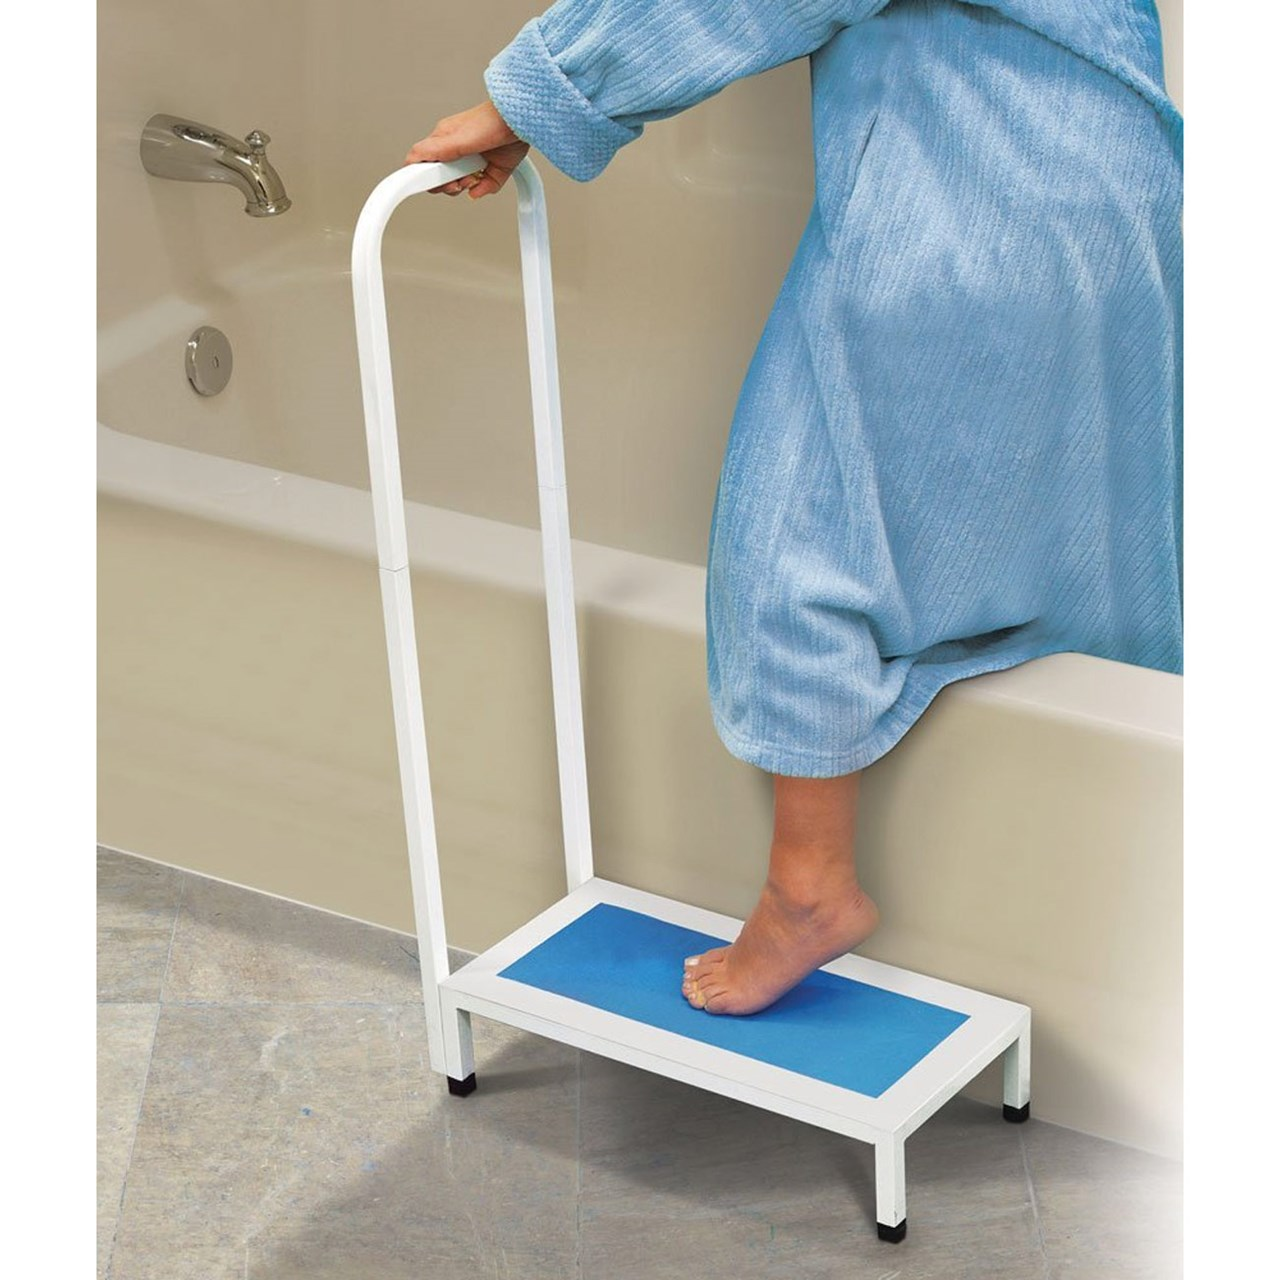 MaxiAids | Non-Slip Bath Step with Handle